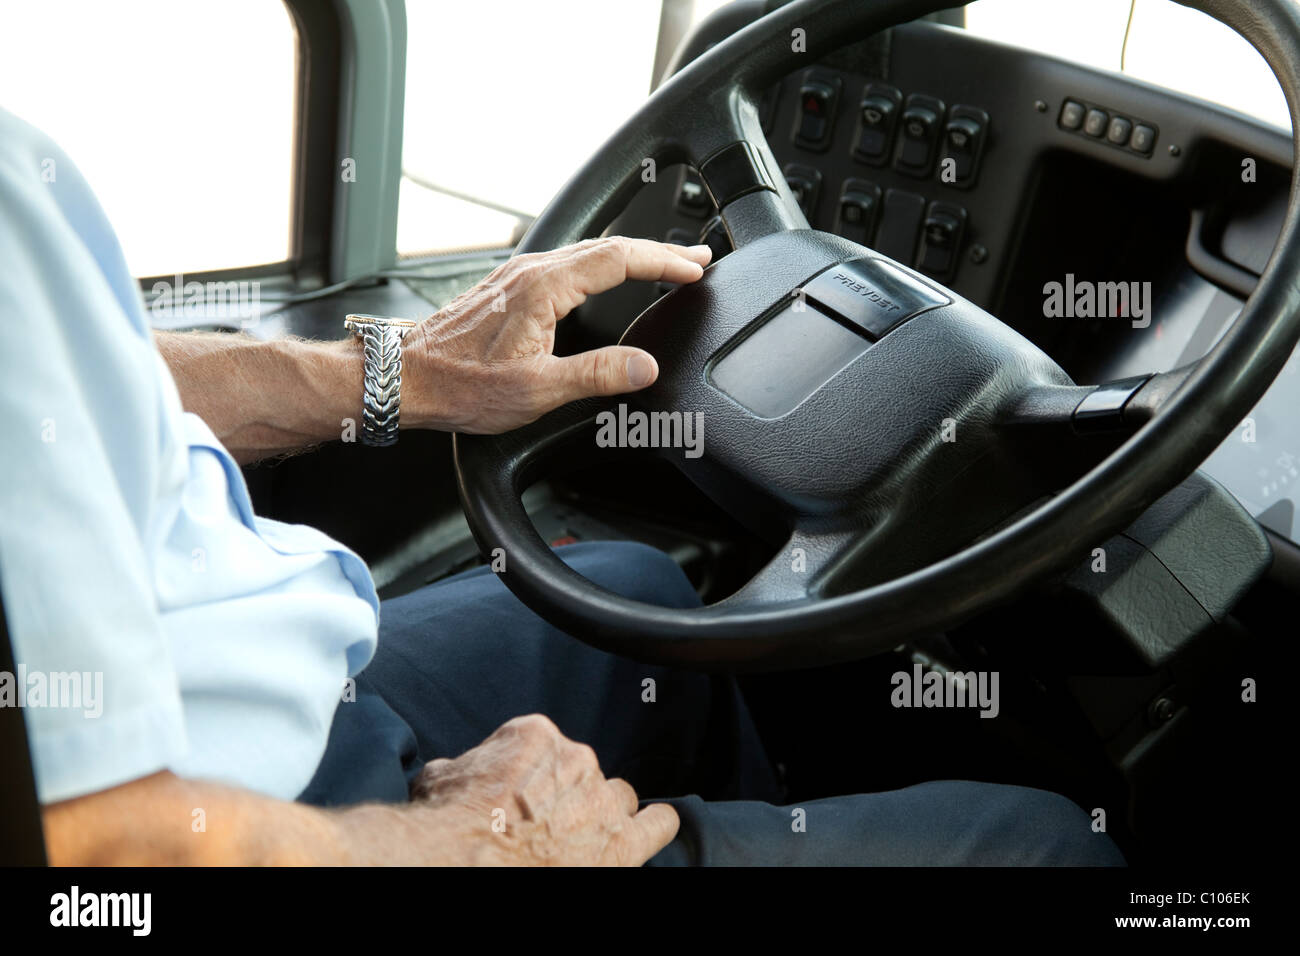 Bus driver's hand on steering wheel USA - Stock Image